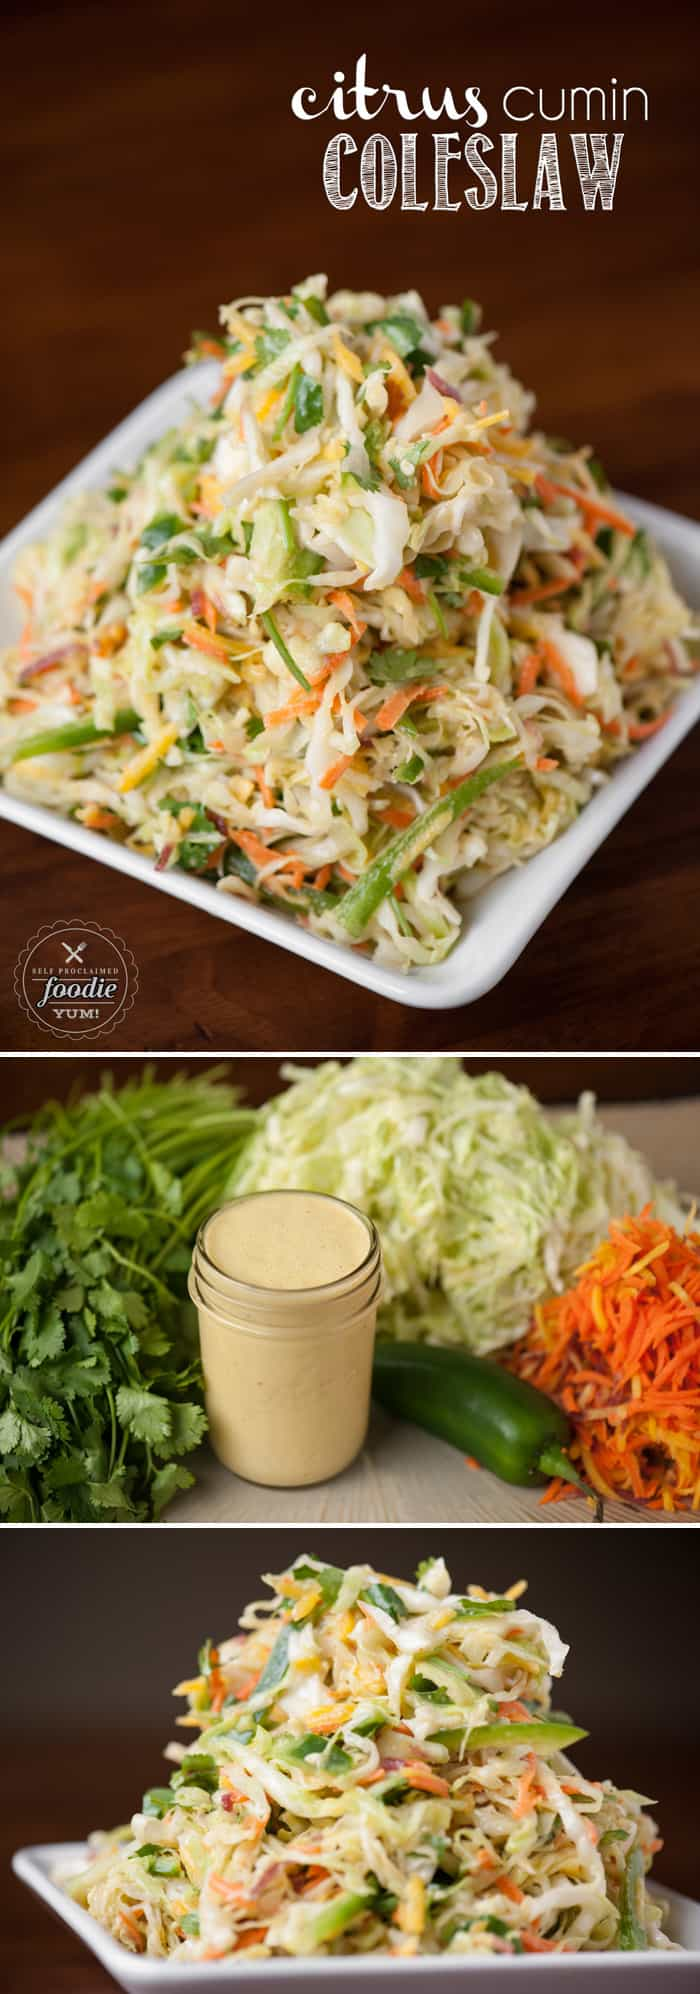 Citrus cumin coleslaw self proclaimed foodie for Sides for fish tacos